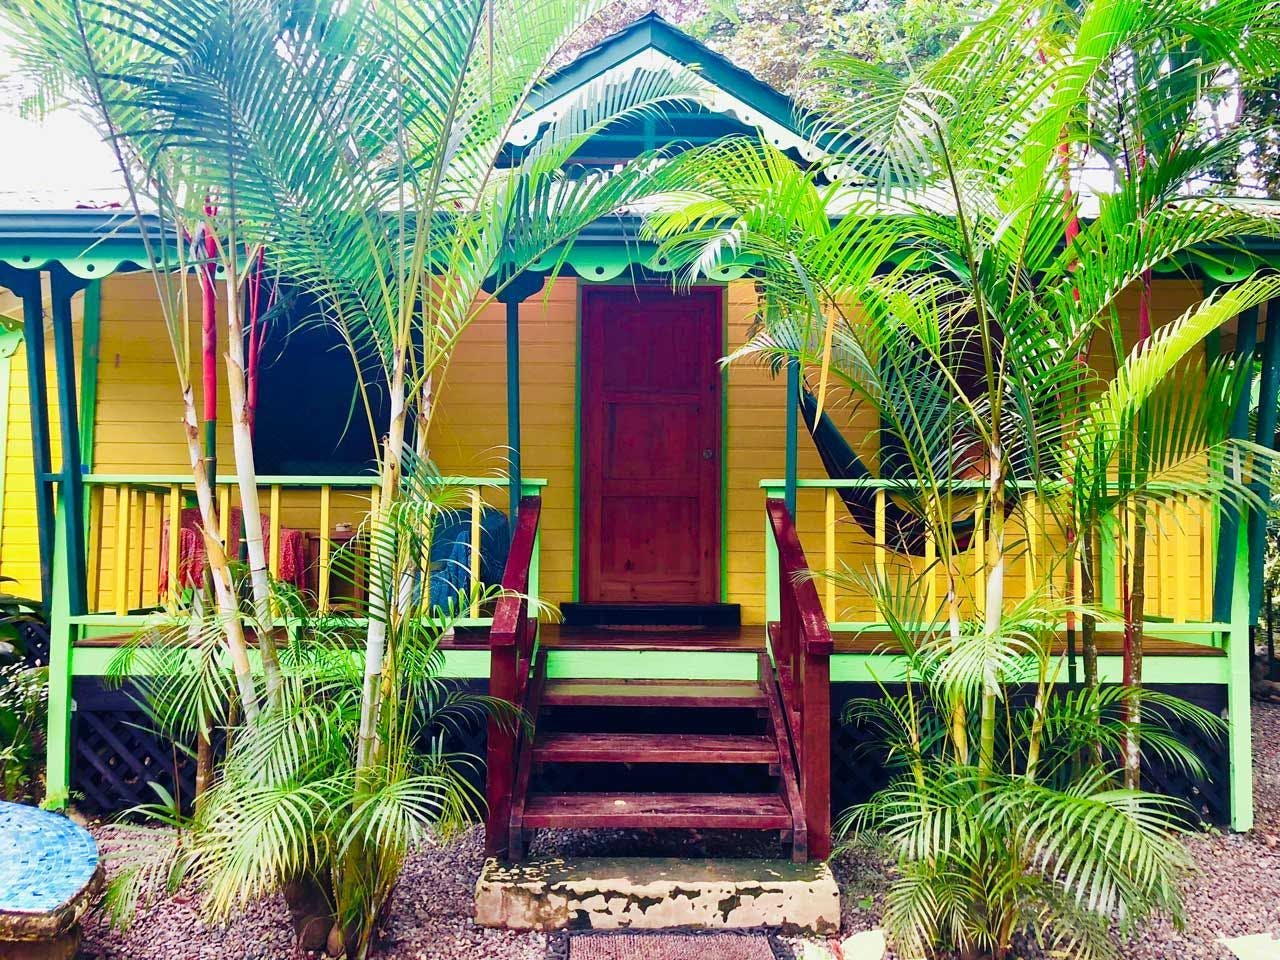 In the Heart of the Jungle | Rustic Cozy House - Incl. Coworking